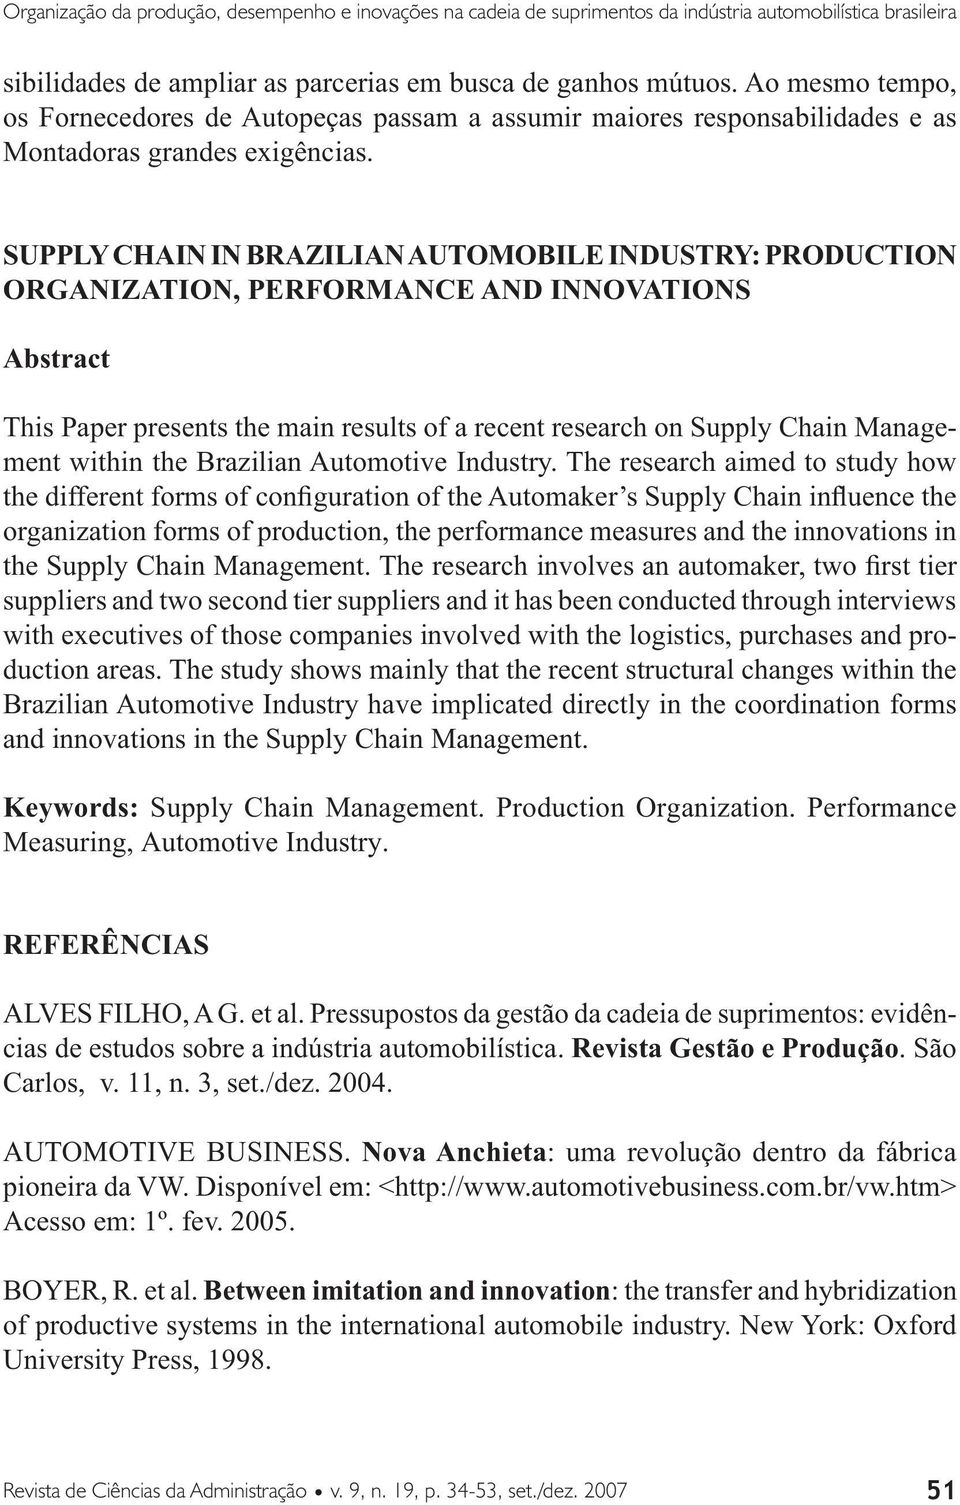 SUPPLY CHAIN IN BRAZILIAN AUTOMOBILE INDUSTRY: PRODUCTION ORGANIZATION, PERFORMANCE AND INNOVATIONS Abstract This Paper presents the main results of a recent research on Supply Chain Management